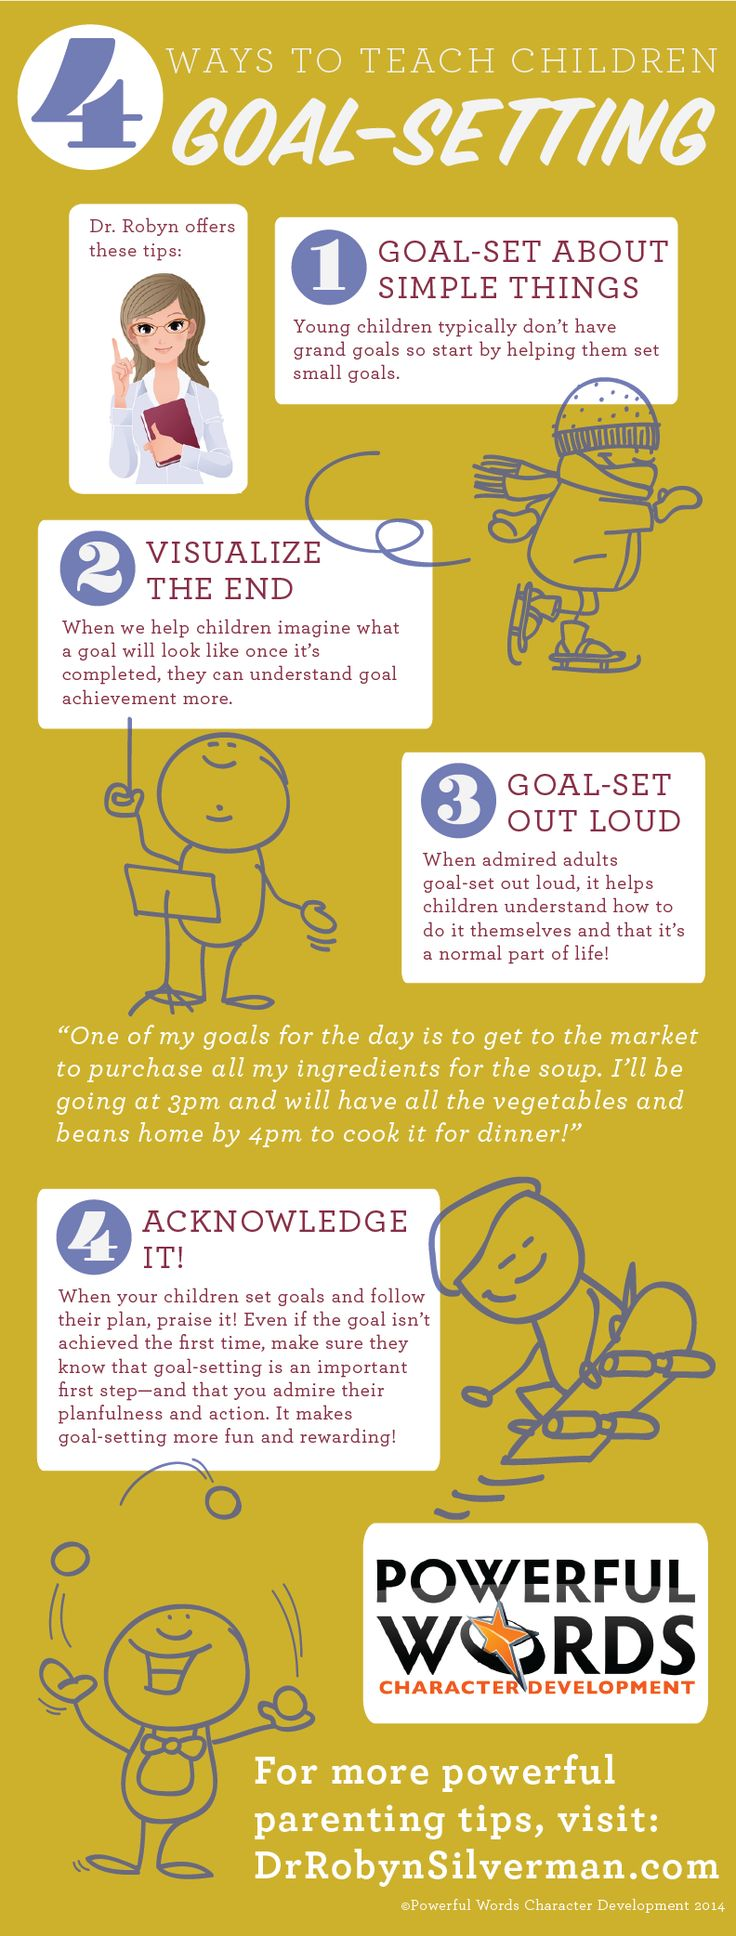 4 Ways to Teach Children about Goal-Setting #Infographic #Parenting http://www.drrobynsilverman.com/